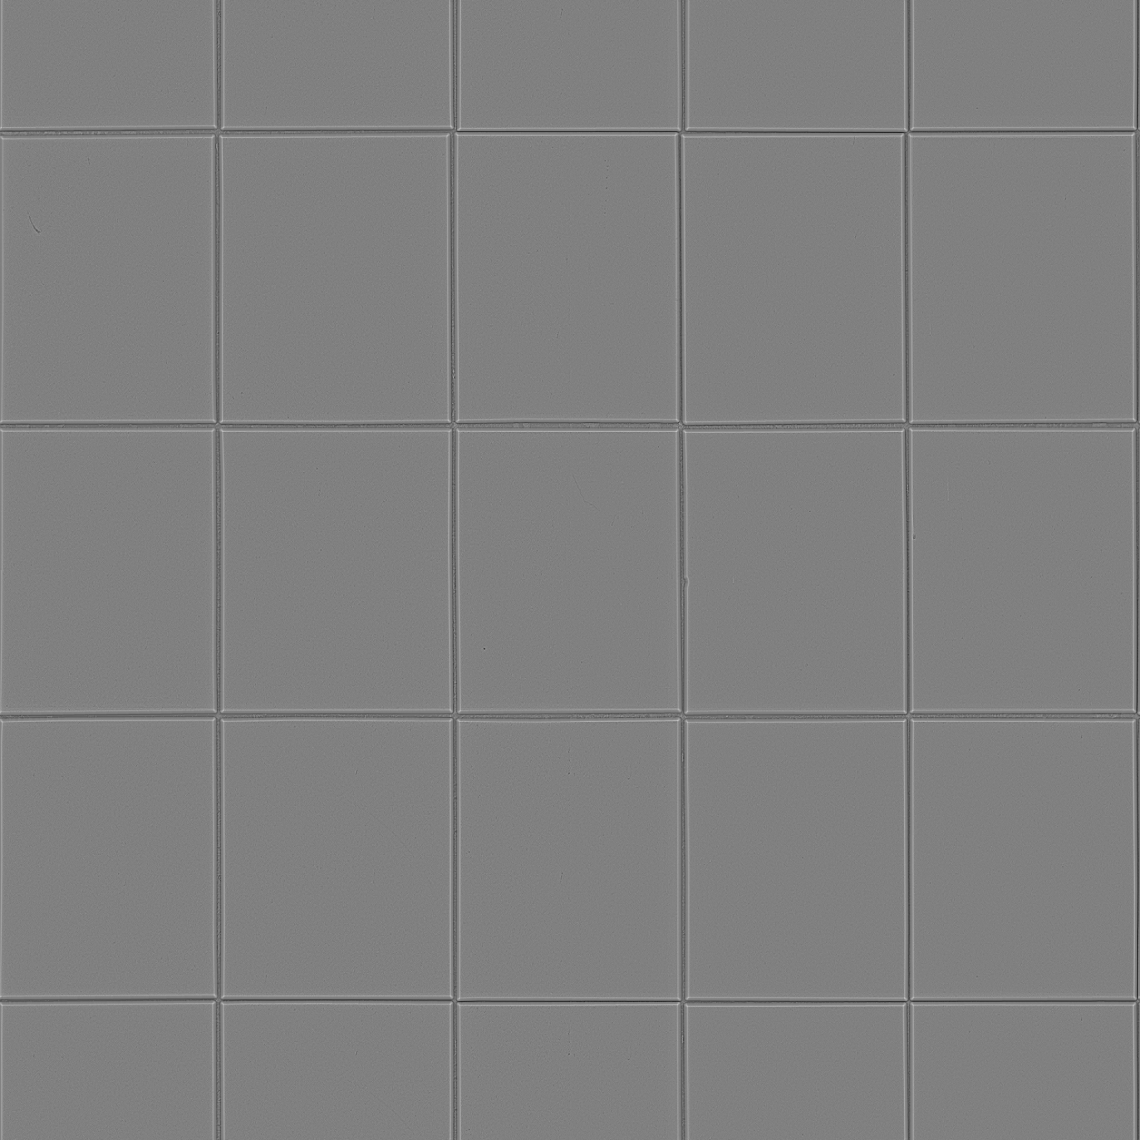 Simple-Tiles-01-Curvature - Seamless